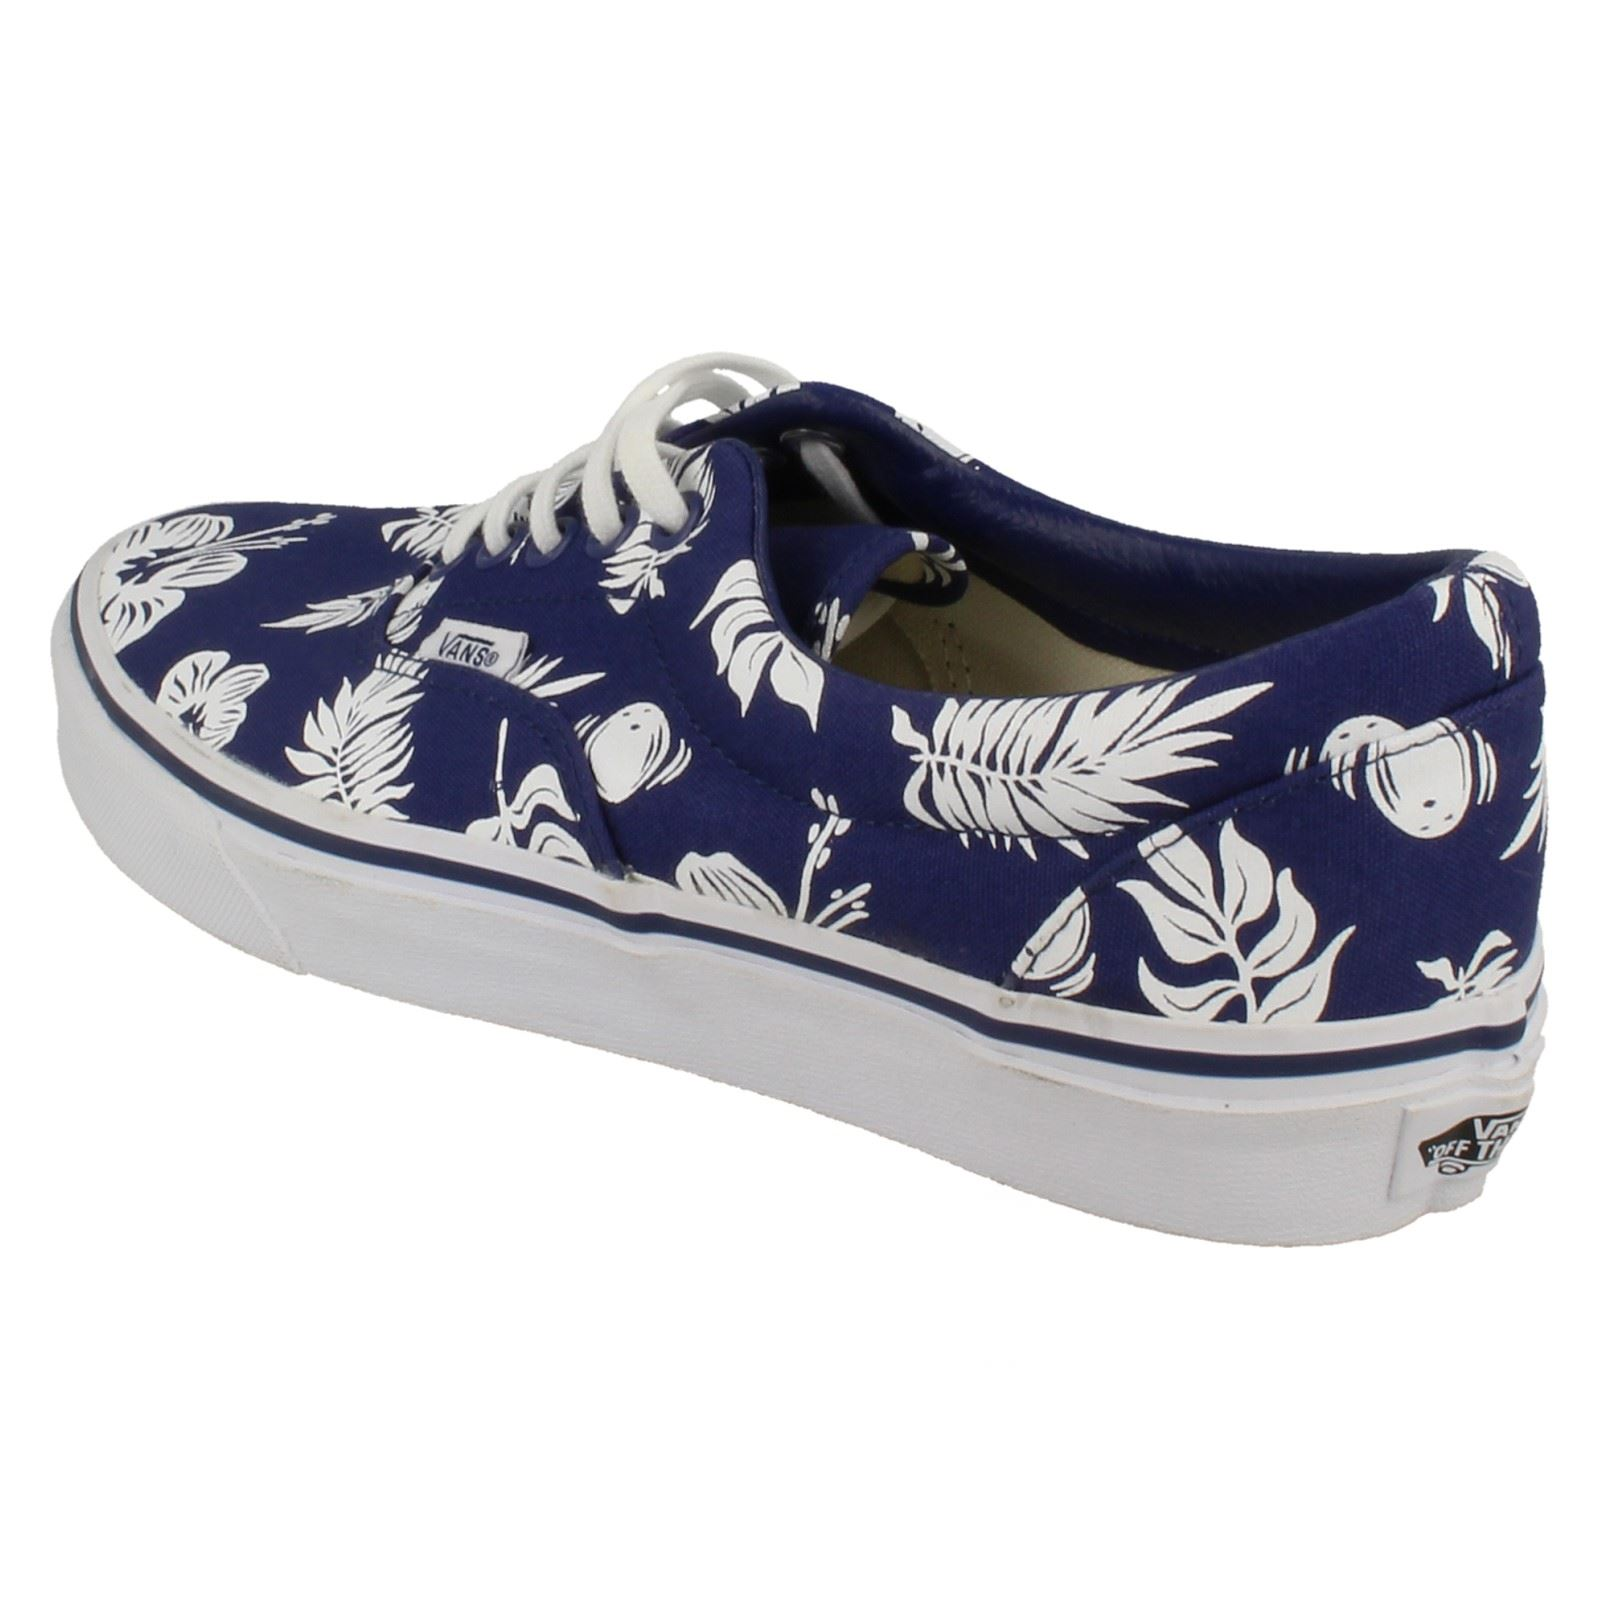 Wall Wall Bleu Off Vans Chaussure Marine Era achat The WbeE2YD9IH